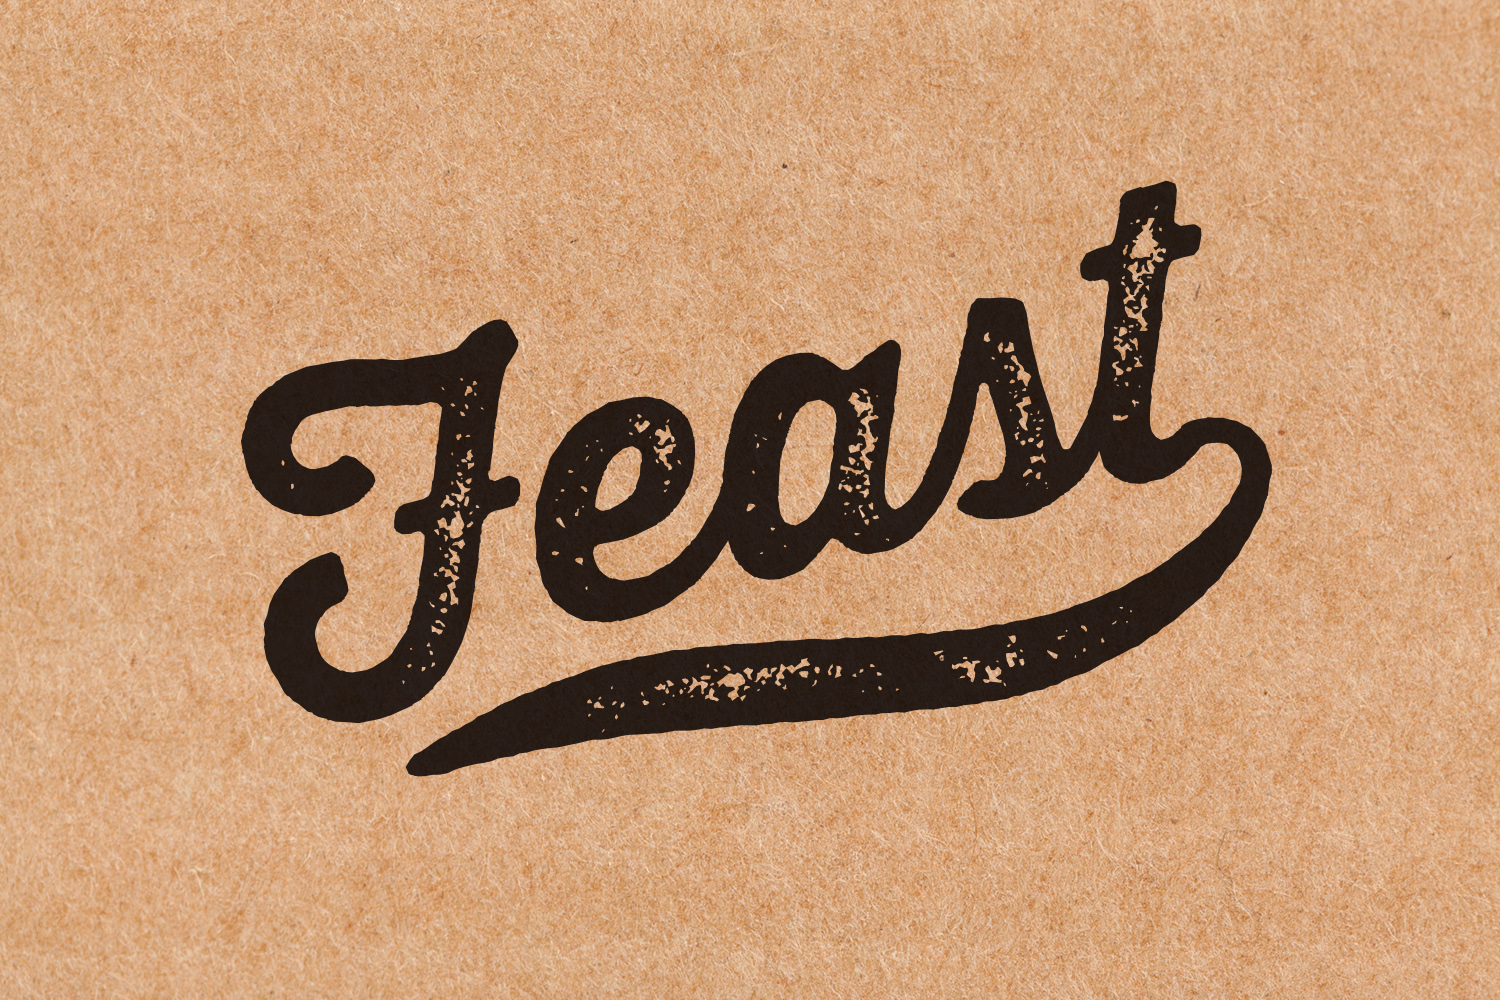 feastco-wordmark-kraft-paper.jpg